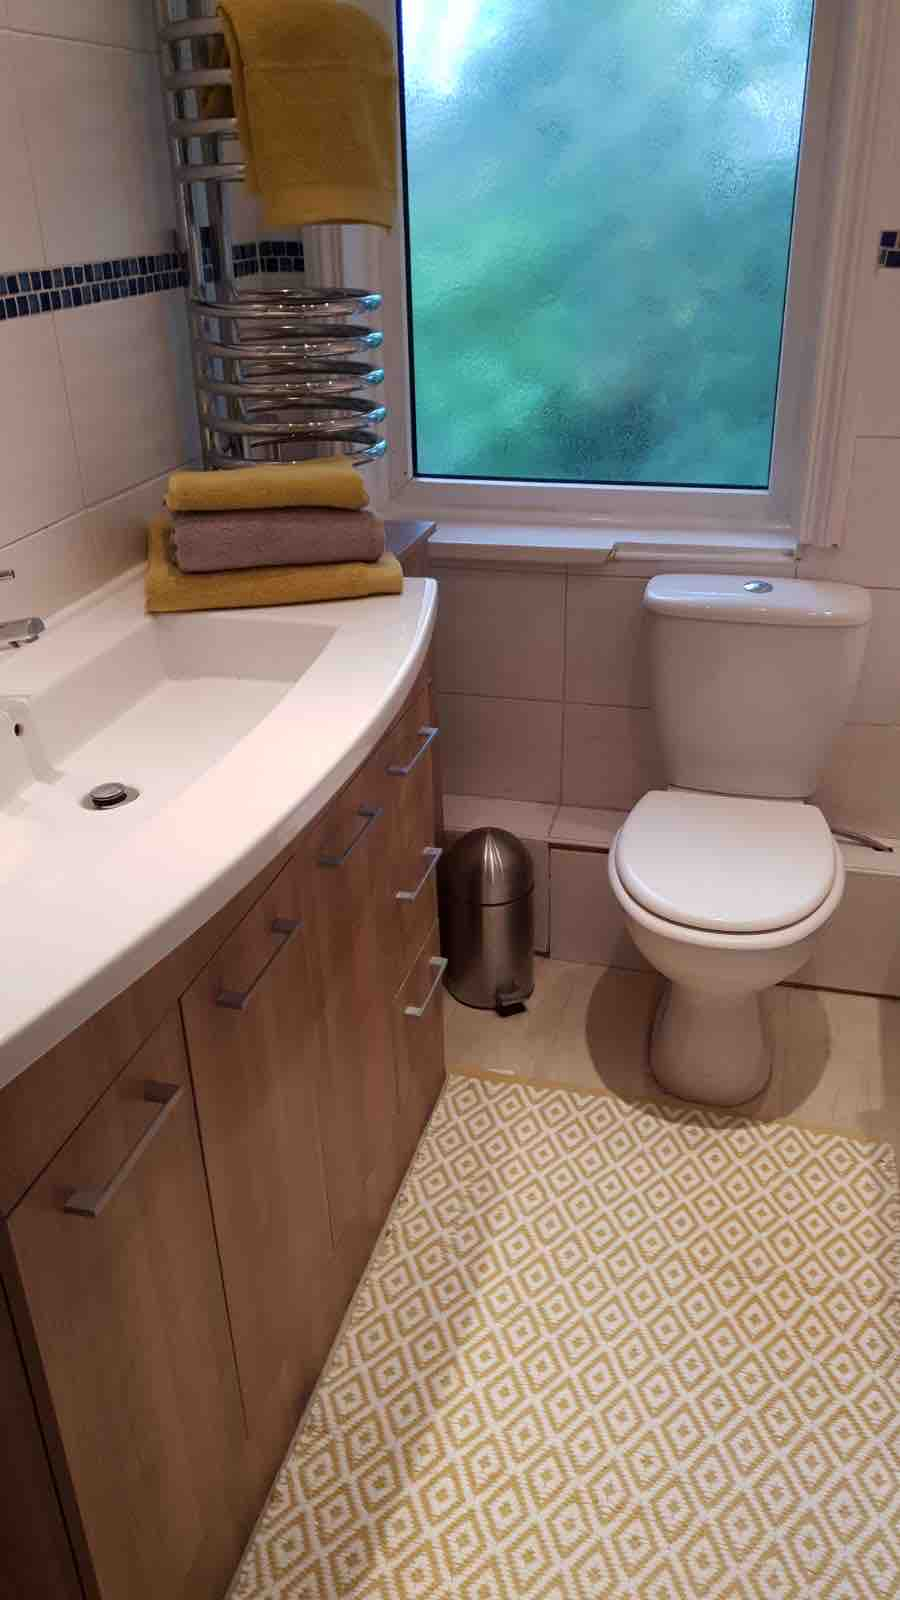 1 room in Neston, Neston, CH64 9SP RoomsLocal image